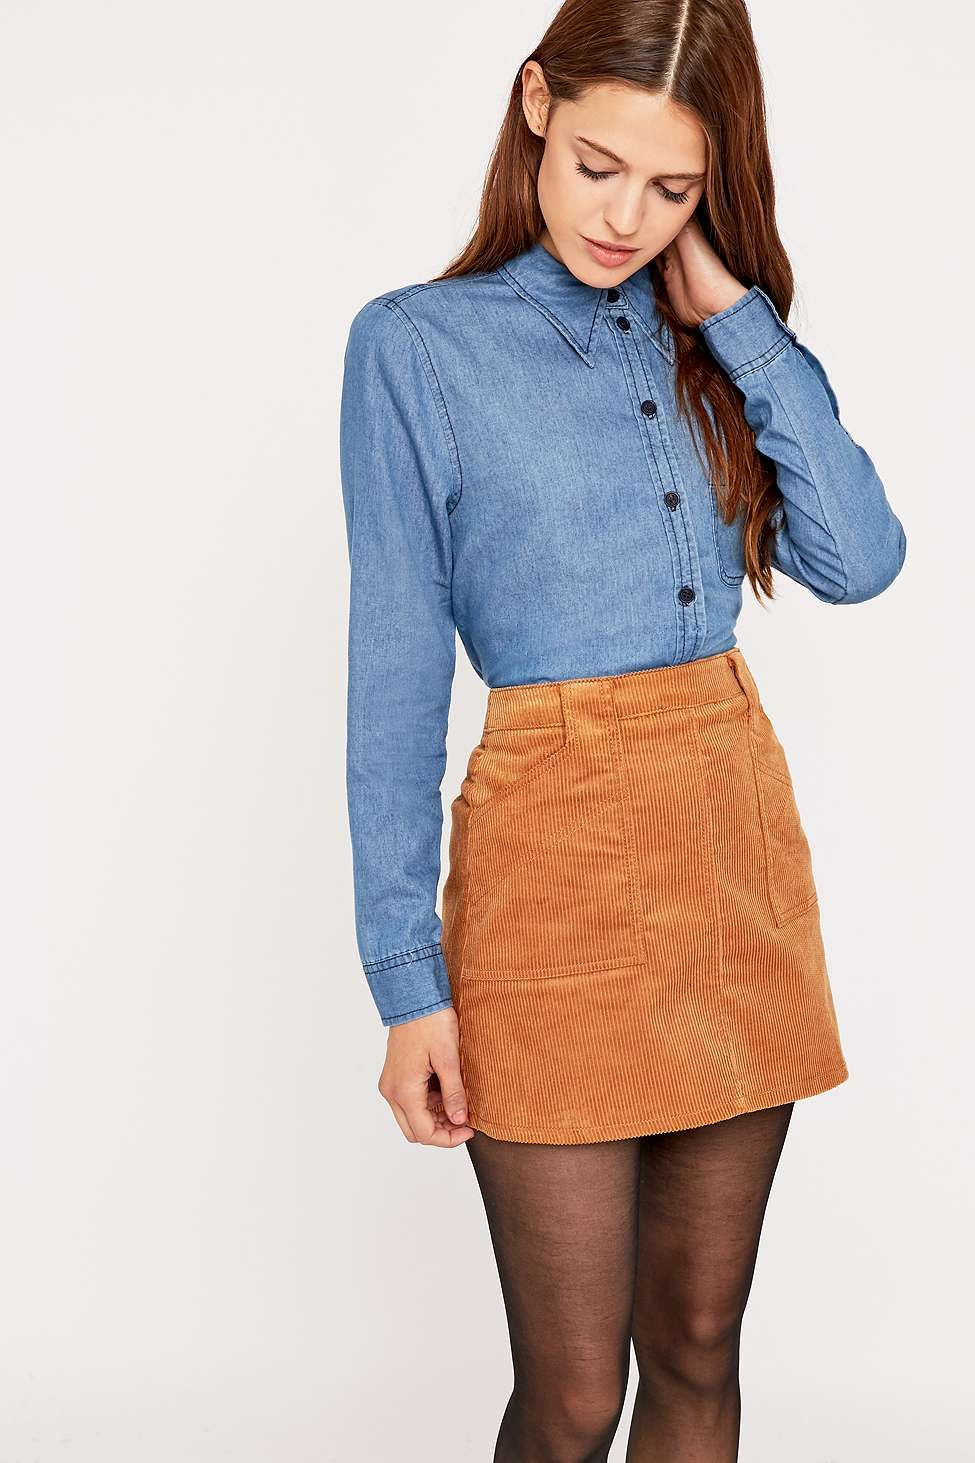 Flannel fashion makeup  s Chambray Shirt  Dresses make up and more  Pinterest